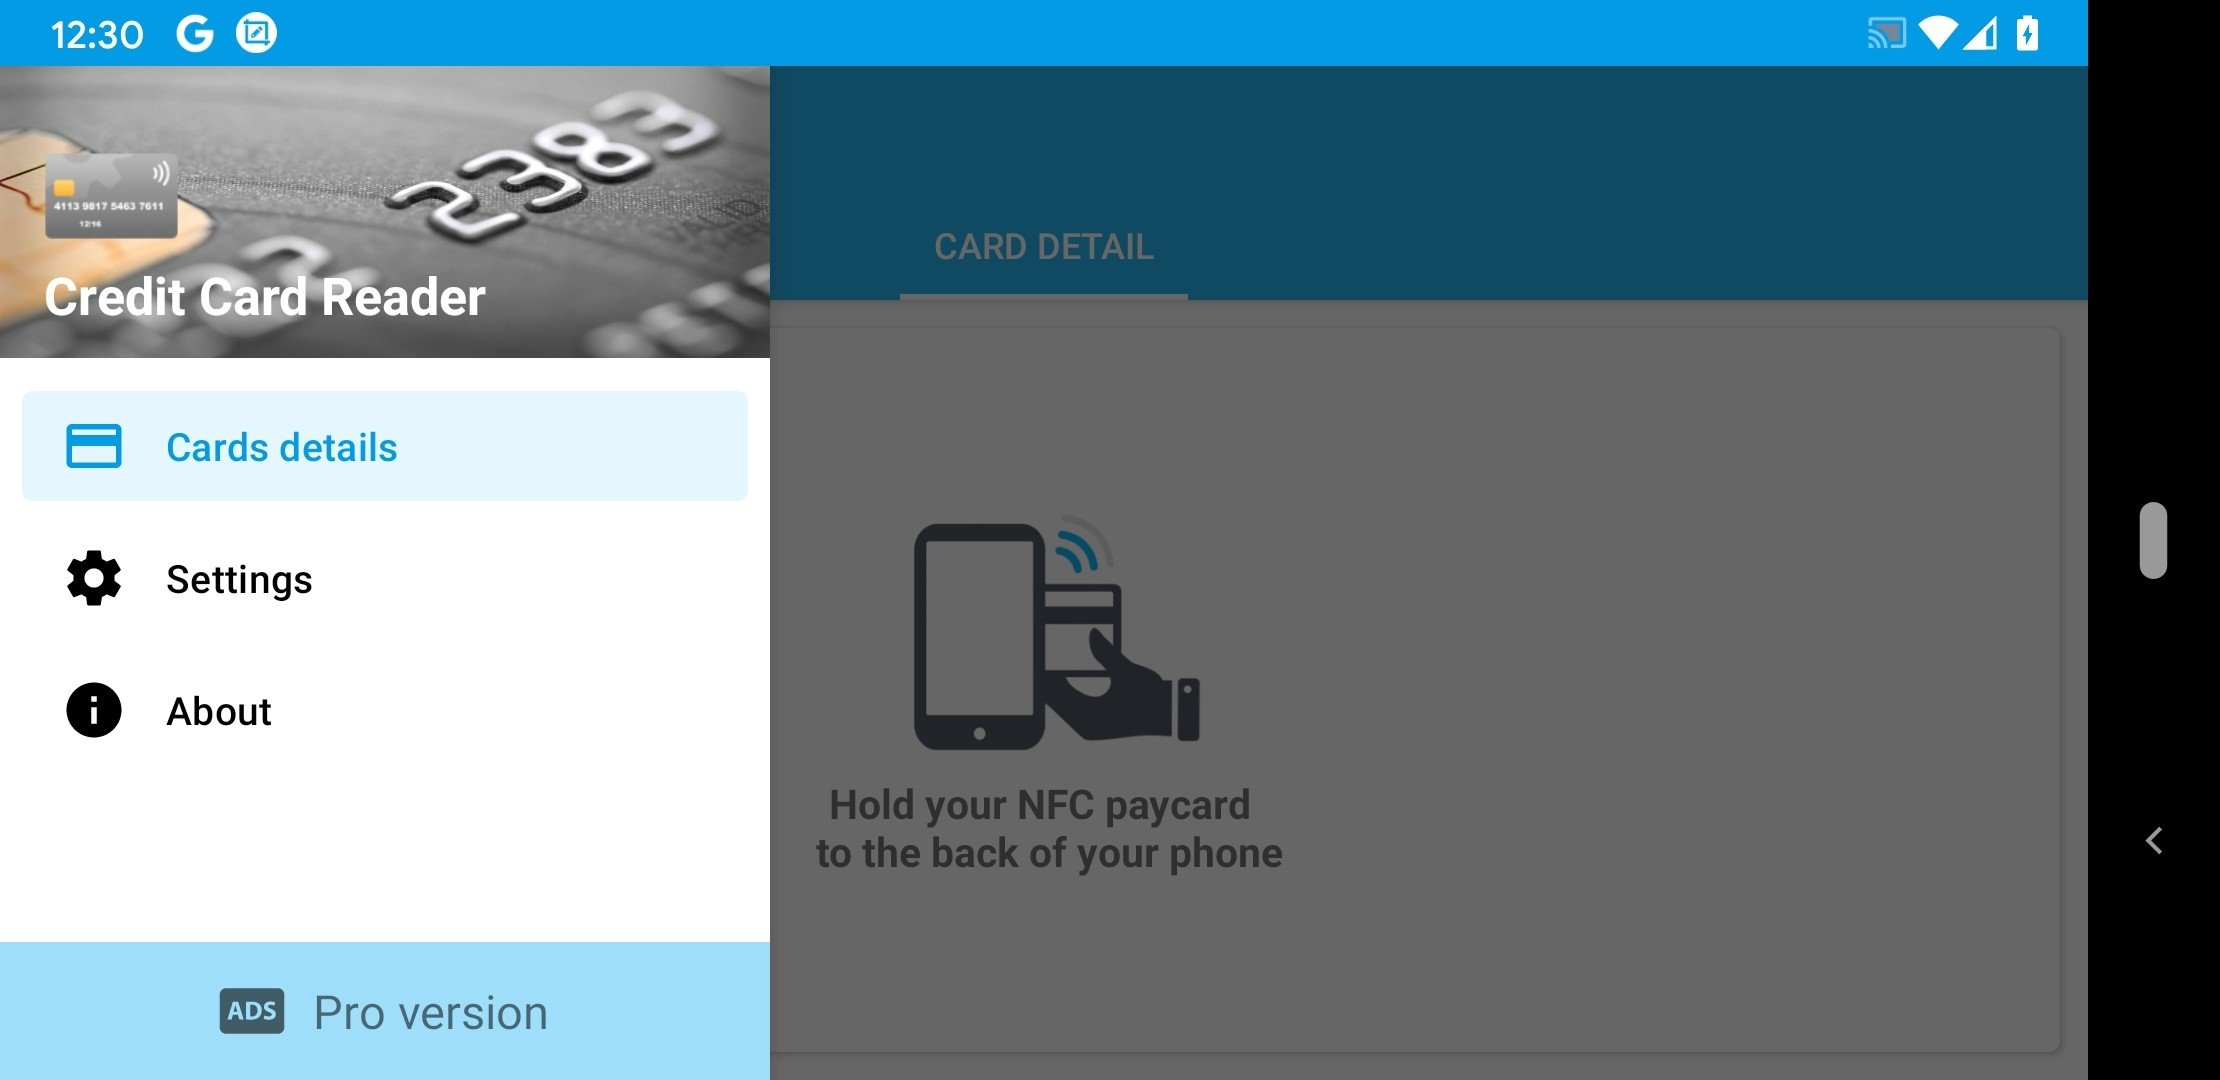 Banking Card Reader Android image 3